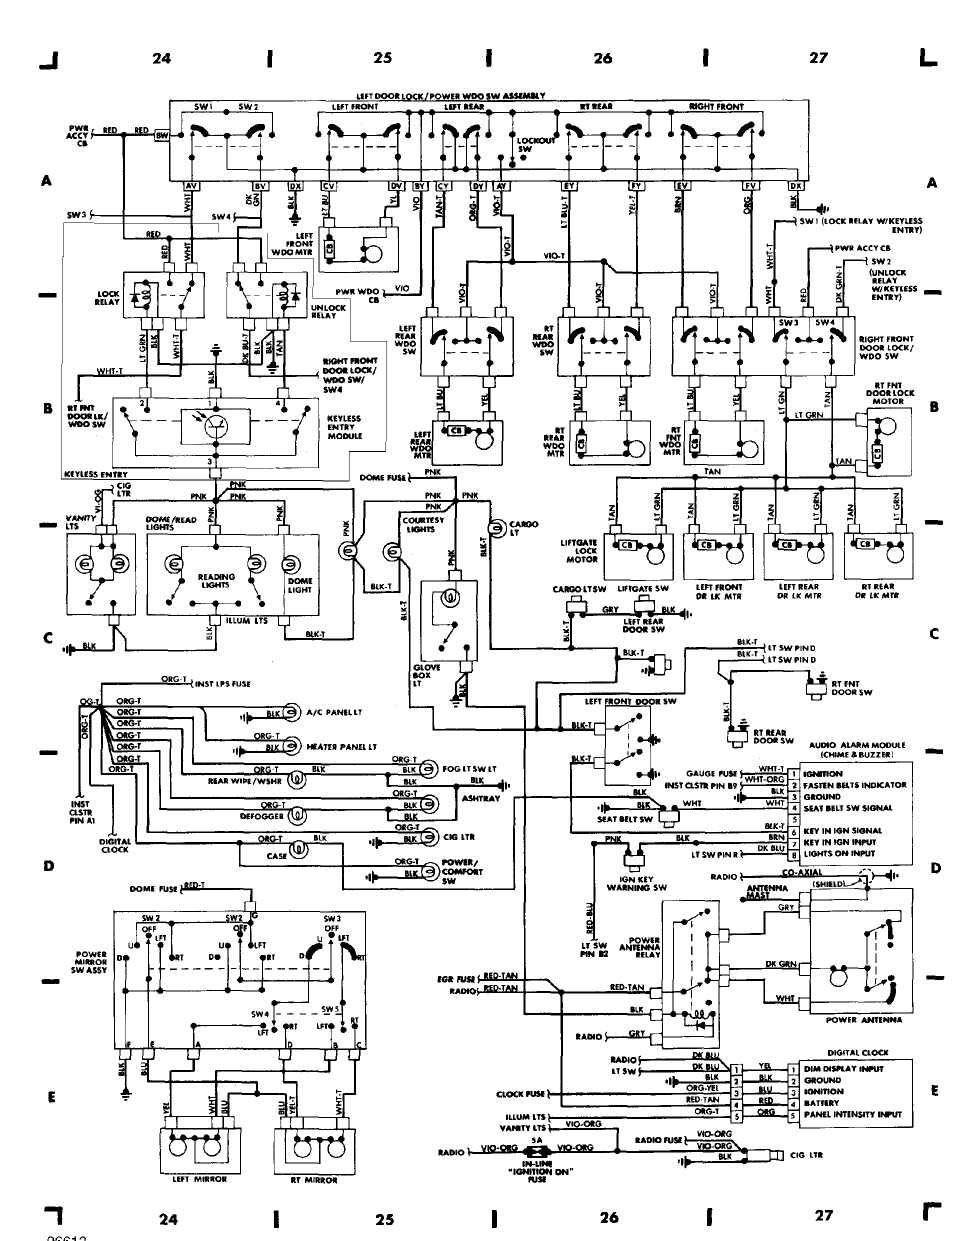 wiring_diagrams_html_61f5e0ad 2001 jeep wrangler wiring diagram 2001 mazda miata wiring diagram 2001 jeep cherokee fuse box diagram at bayanpartner.co